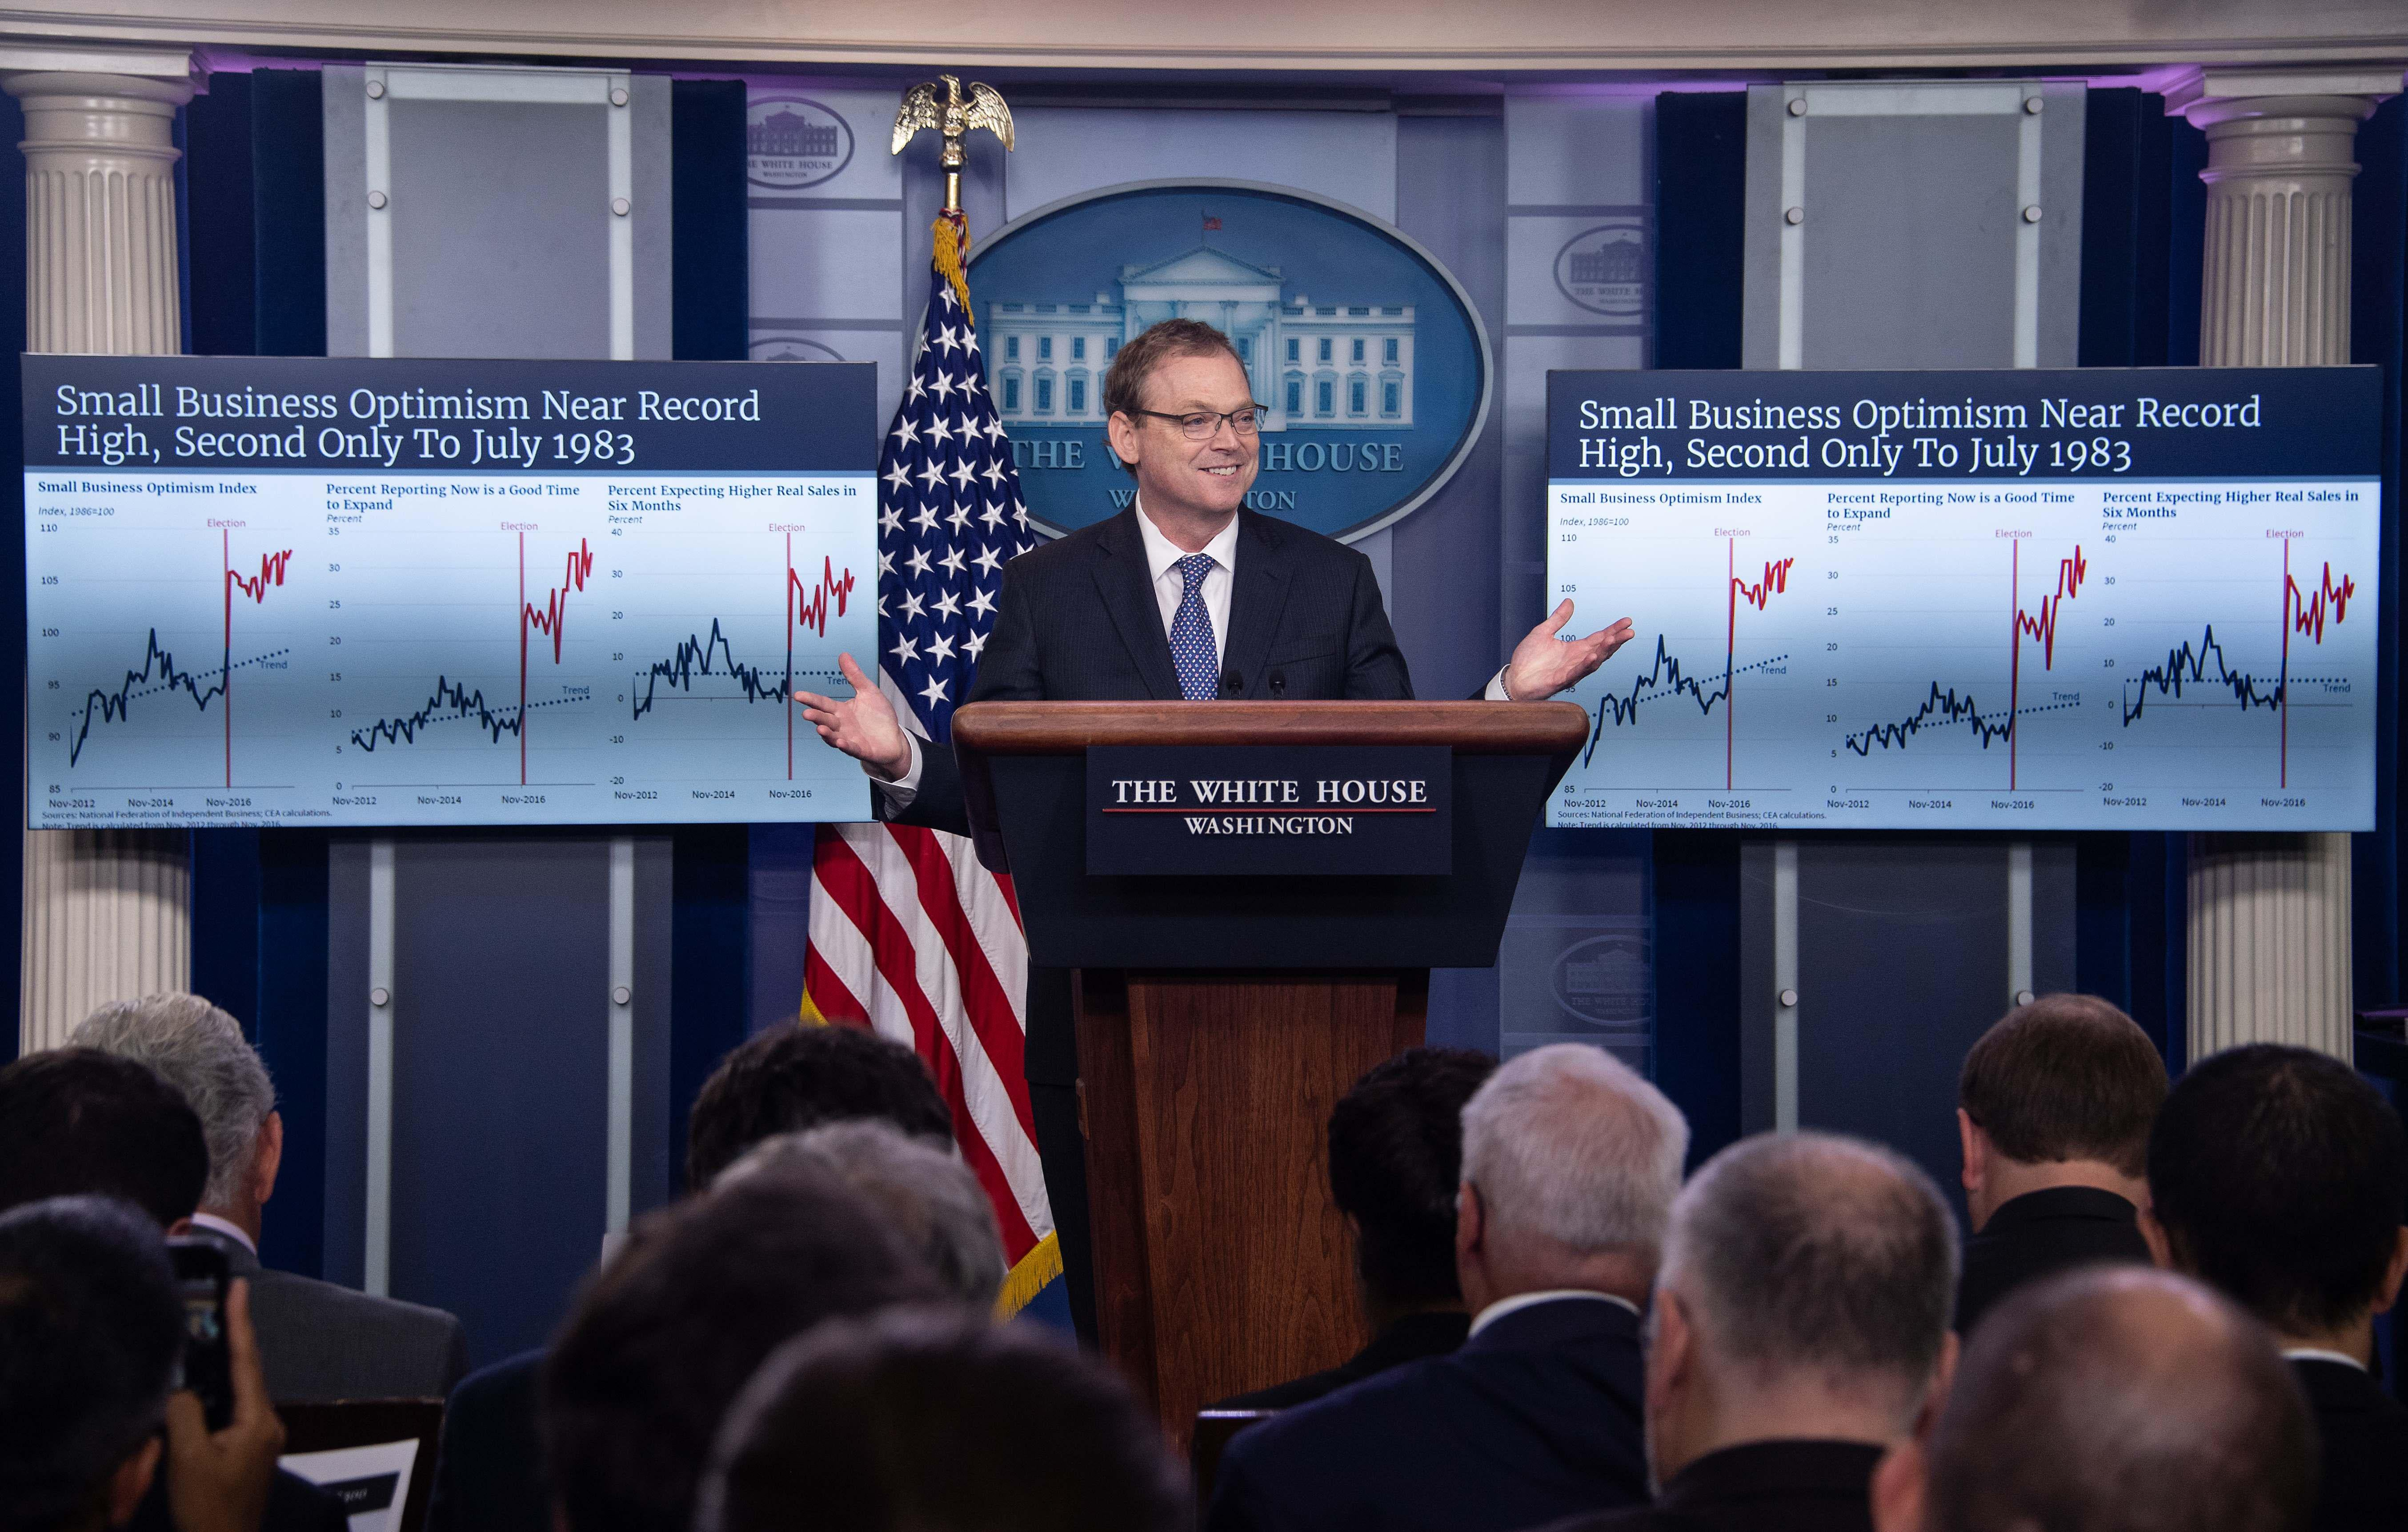 Kevin Hassett stands at briefing room podium flanked by large posters of economic graphs.